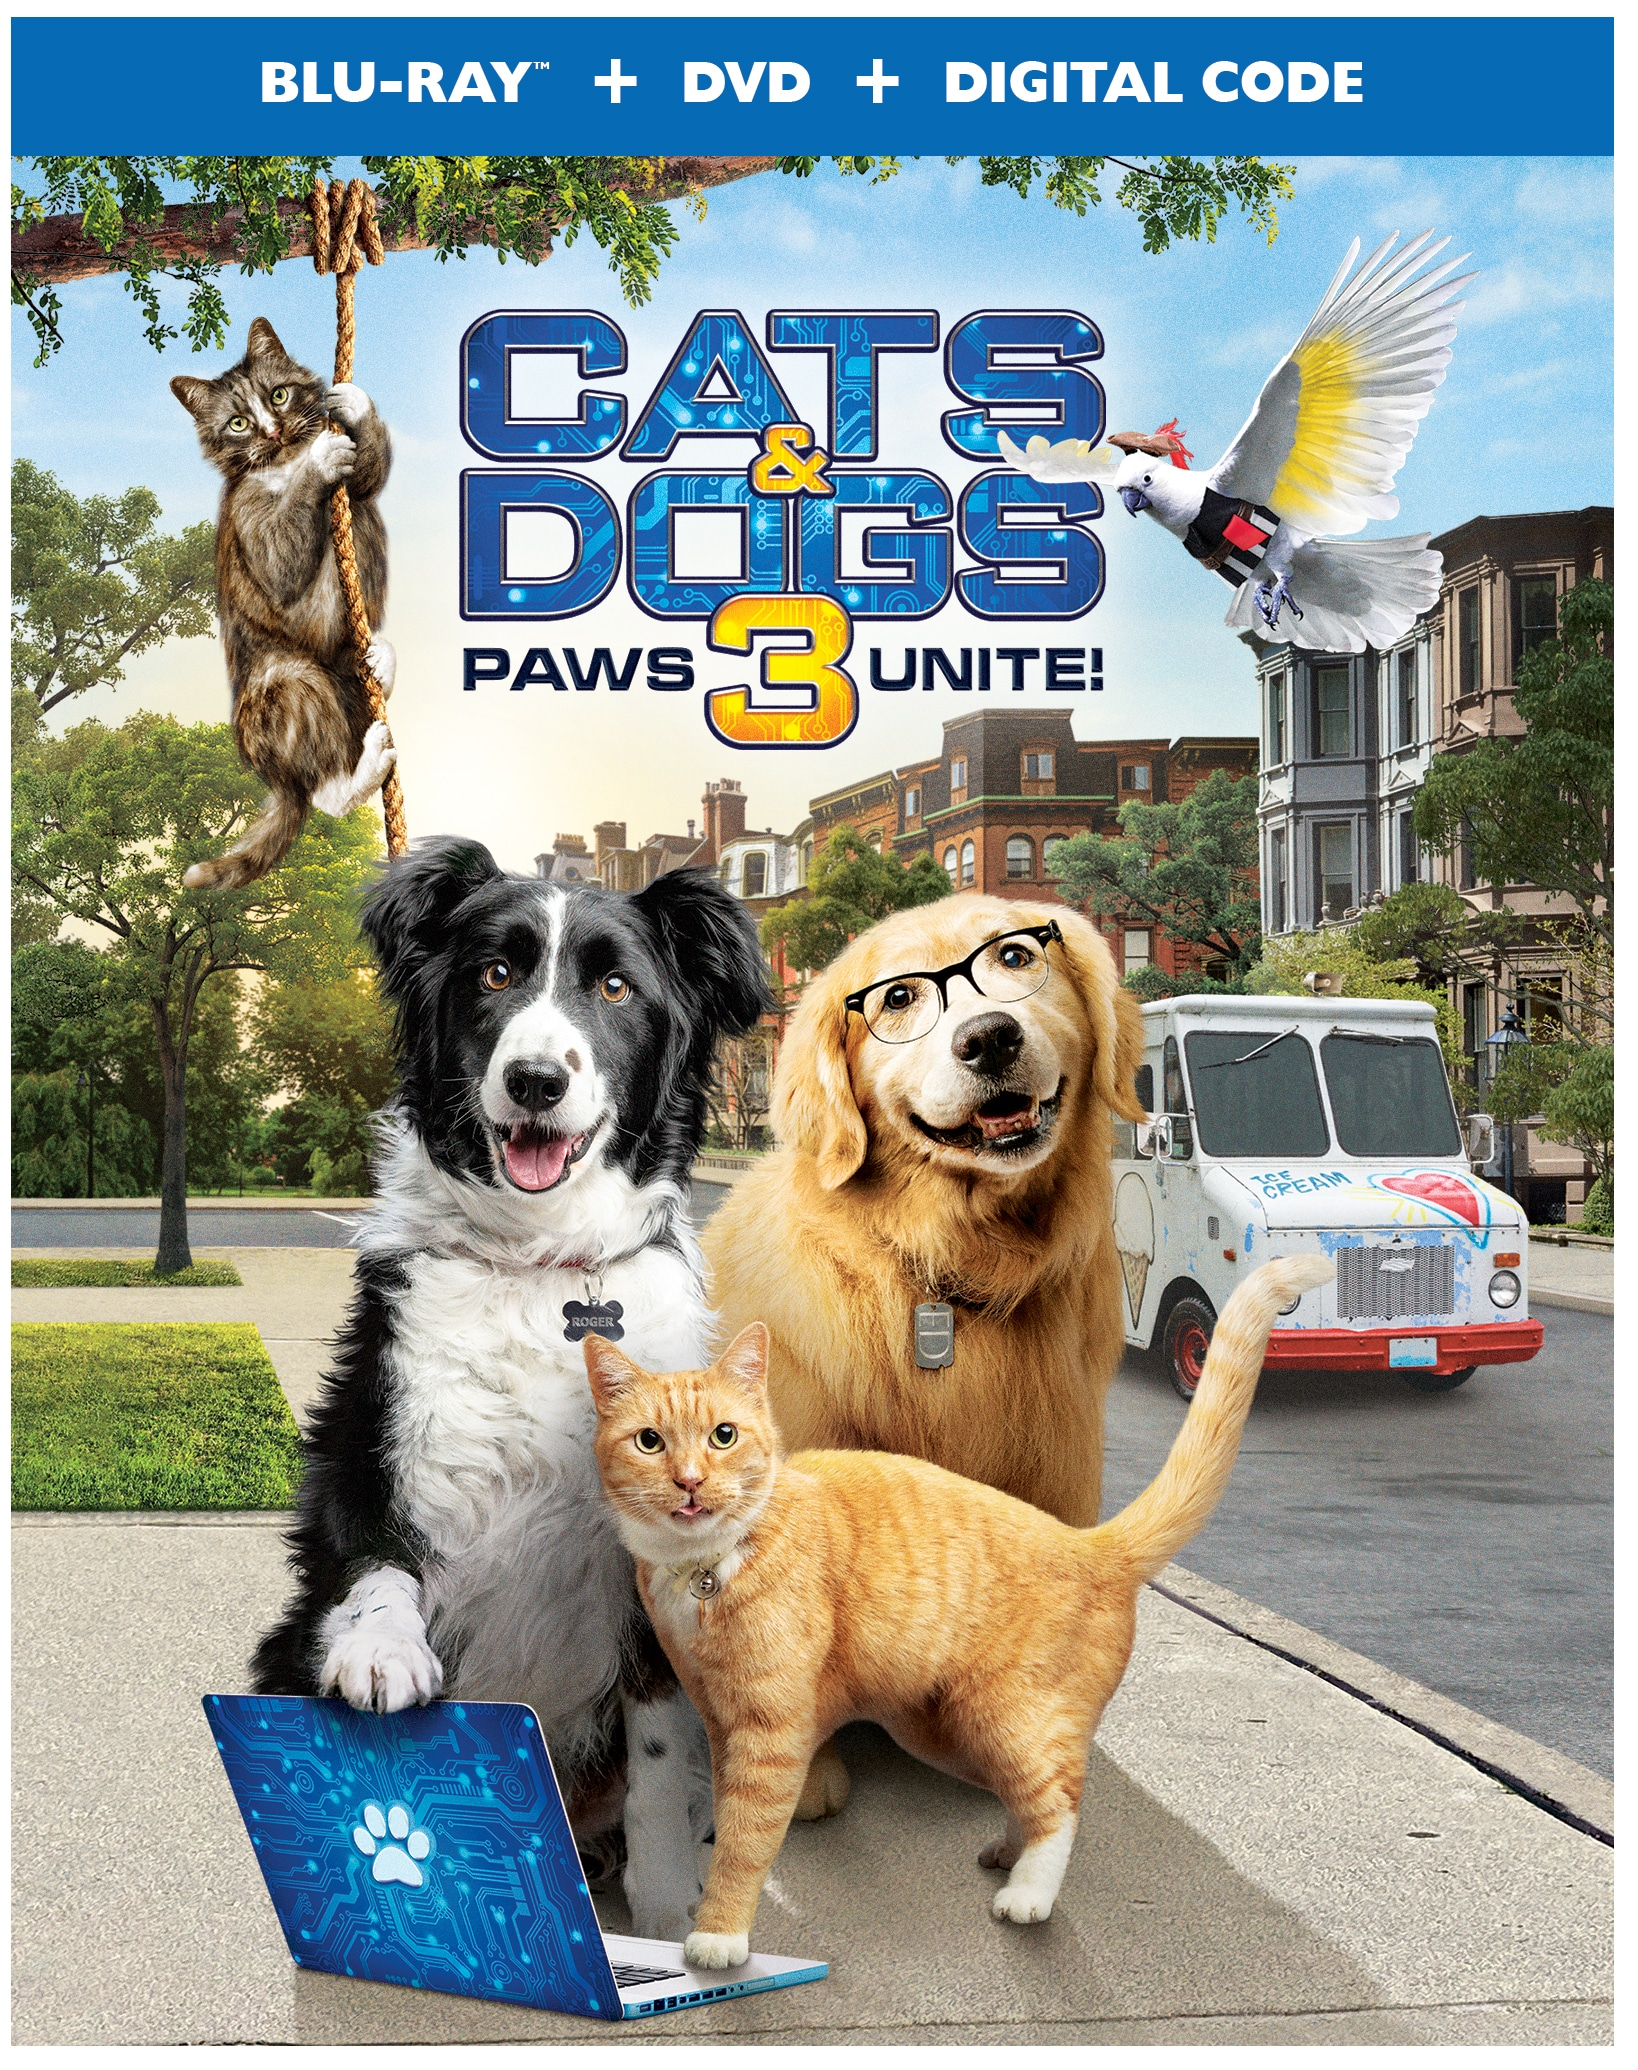 Cats and Dogs 3: Paws Unite! Poster. Discover who has the upper paw in Cats & Dogs 3: Paws Unite!, the next feature-length installment of the popular Cats & Dogs franchise from Warner Bros. Home Entertainment. Available on Digital on September 15 and on both Blu-ray Combo Pack and DVD on October 13.